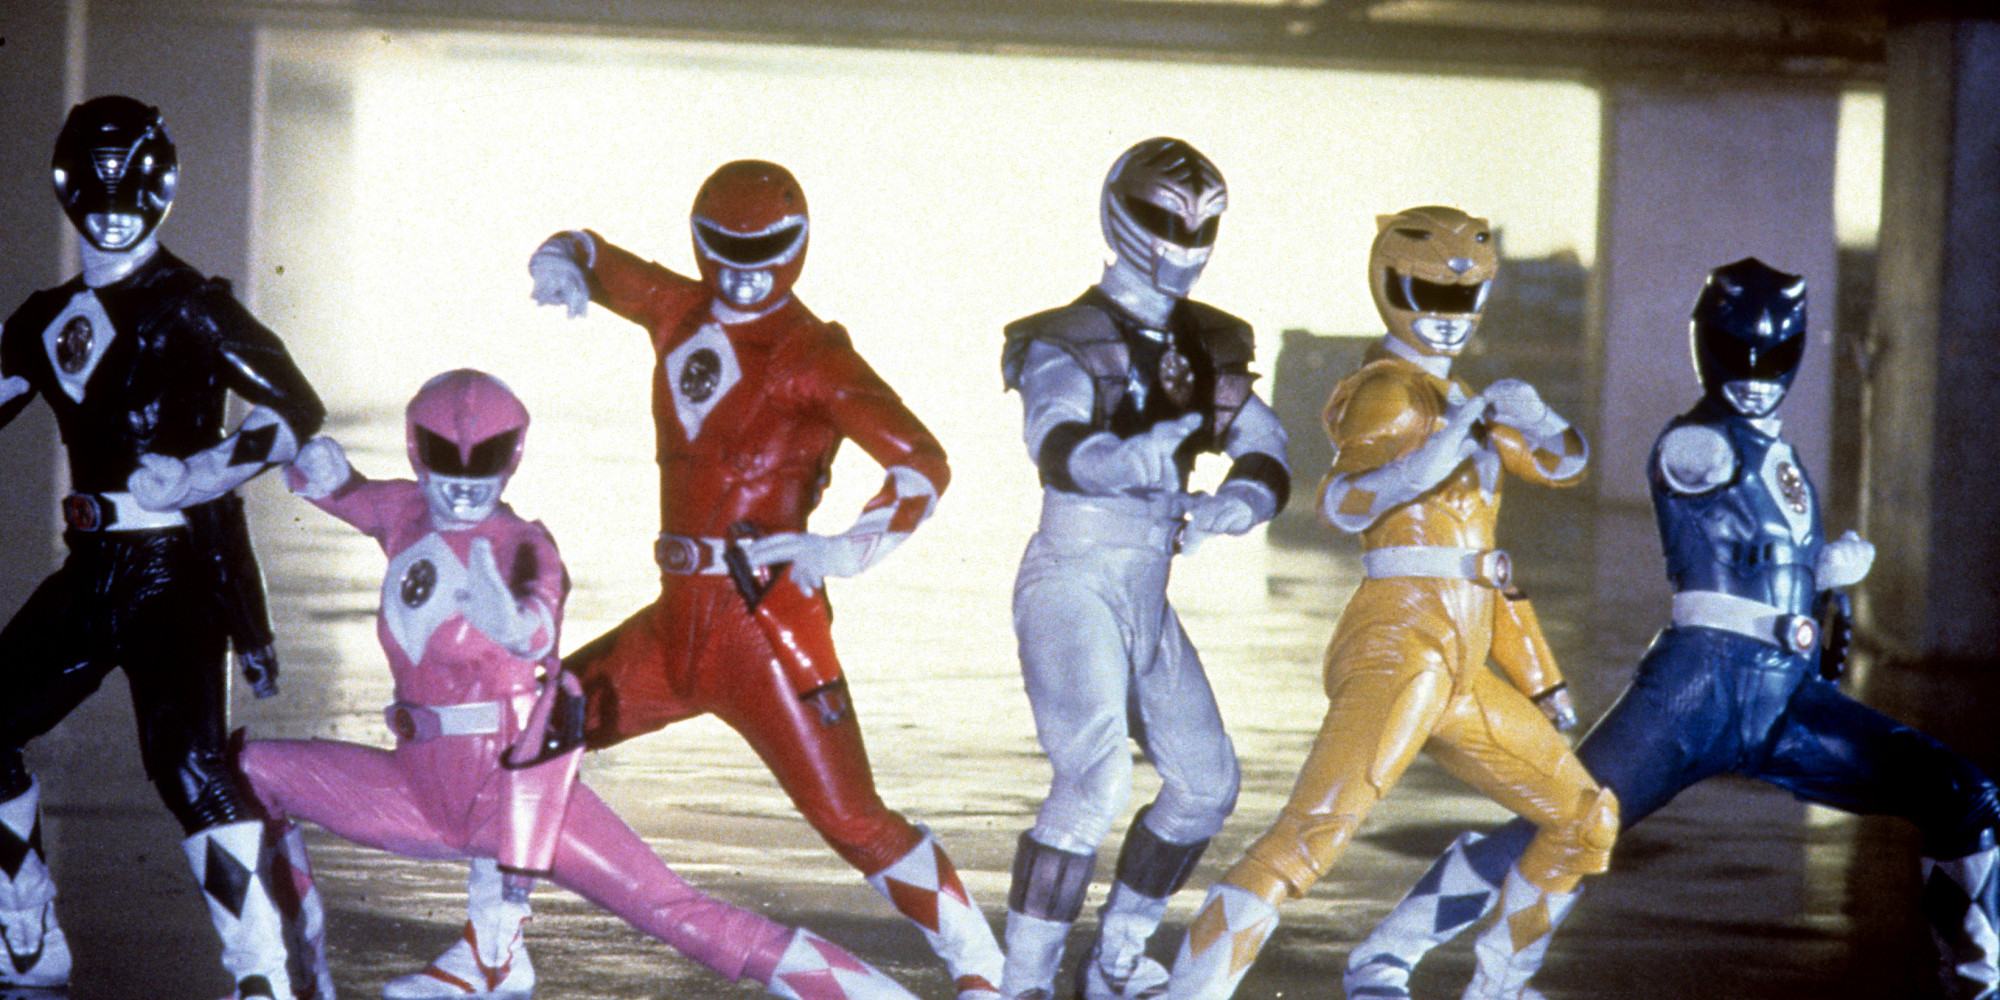 A New Power Rangers Movie Franchise Is In The Works | HuffPost